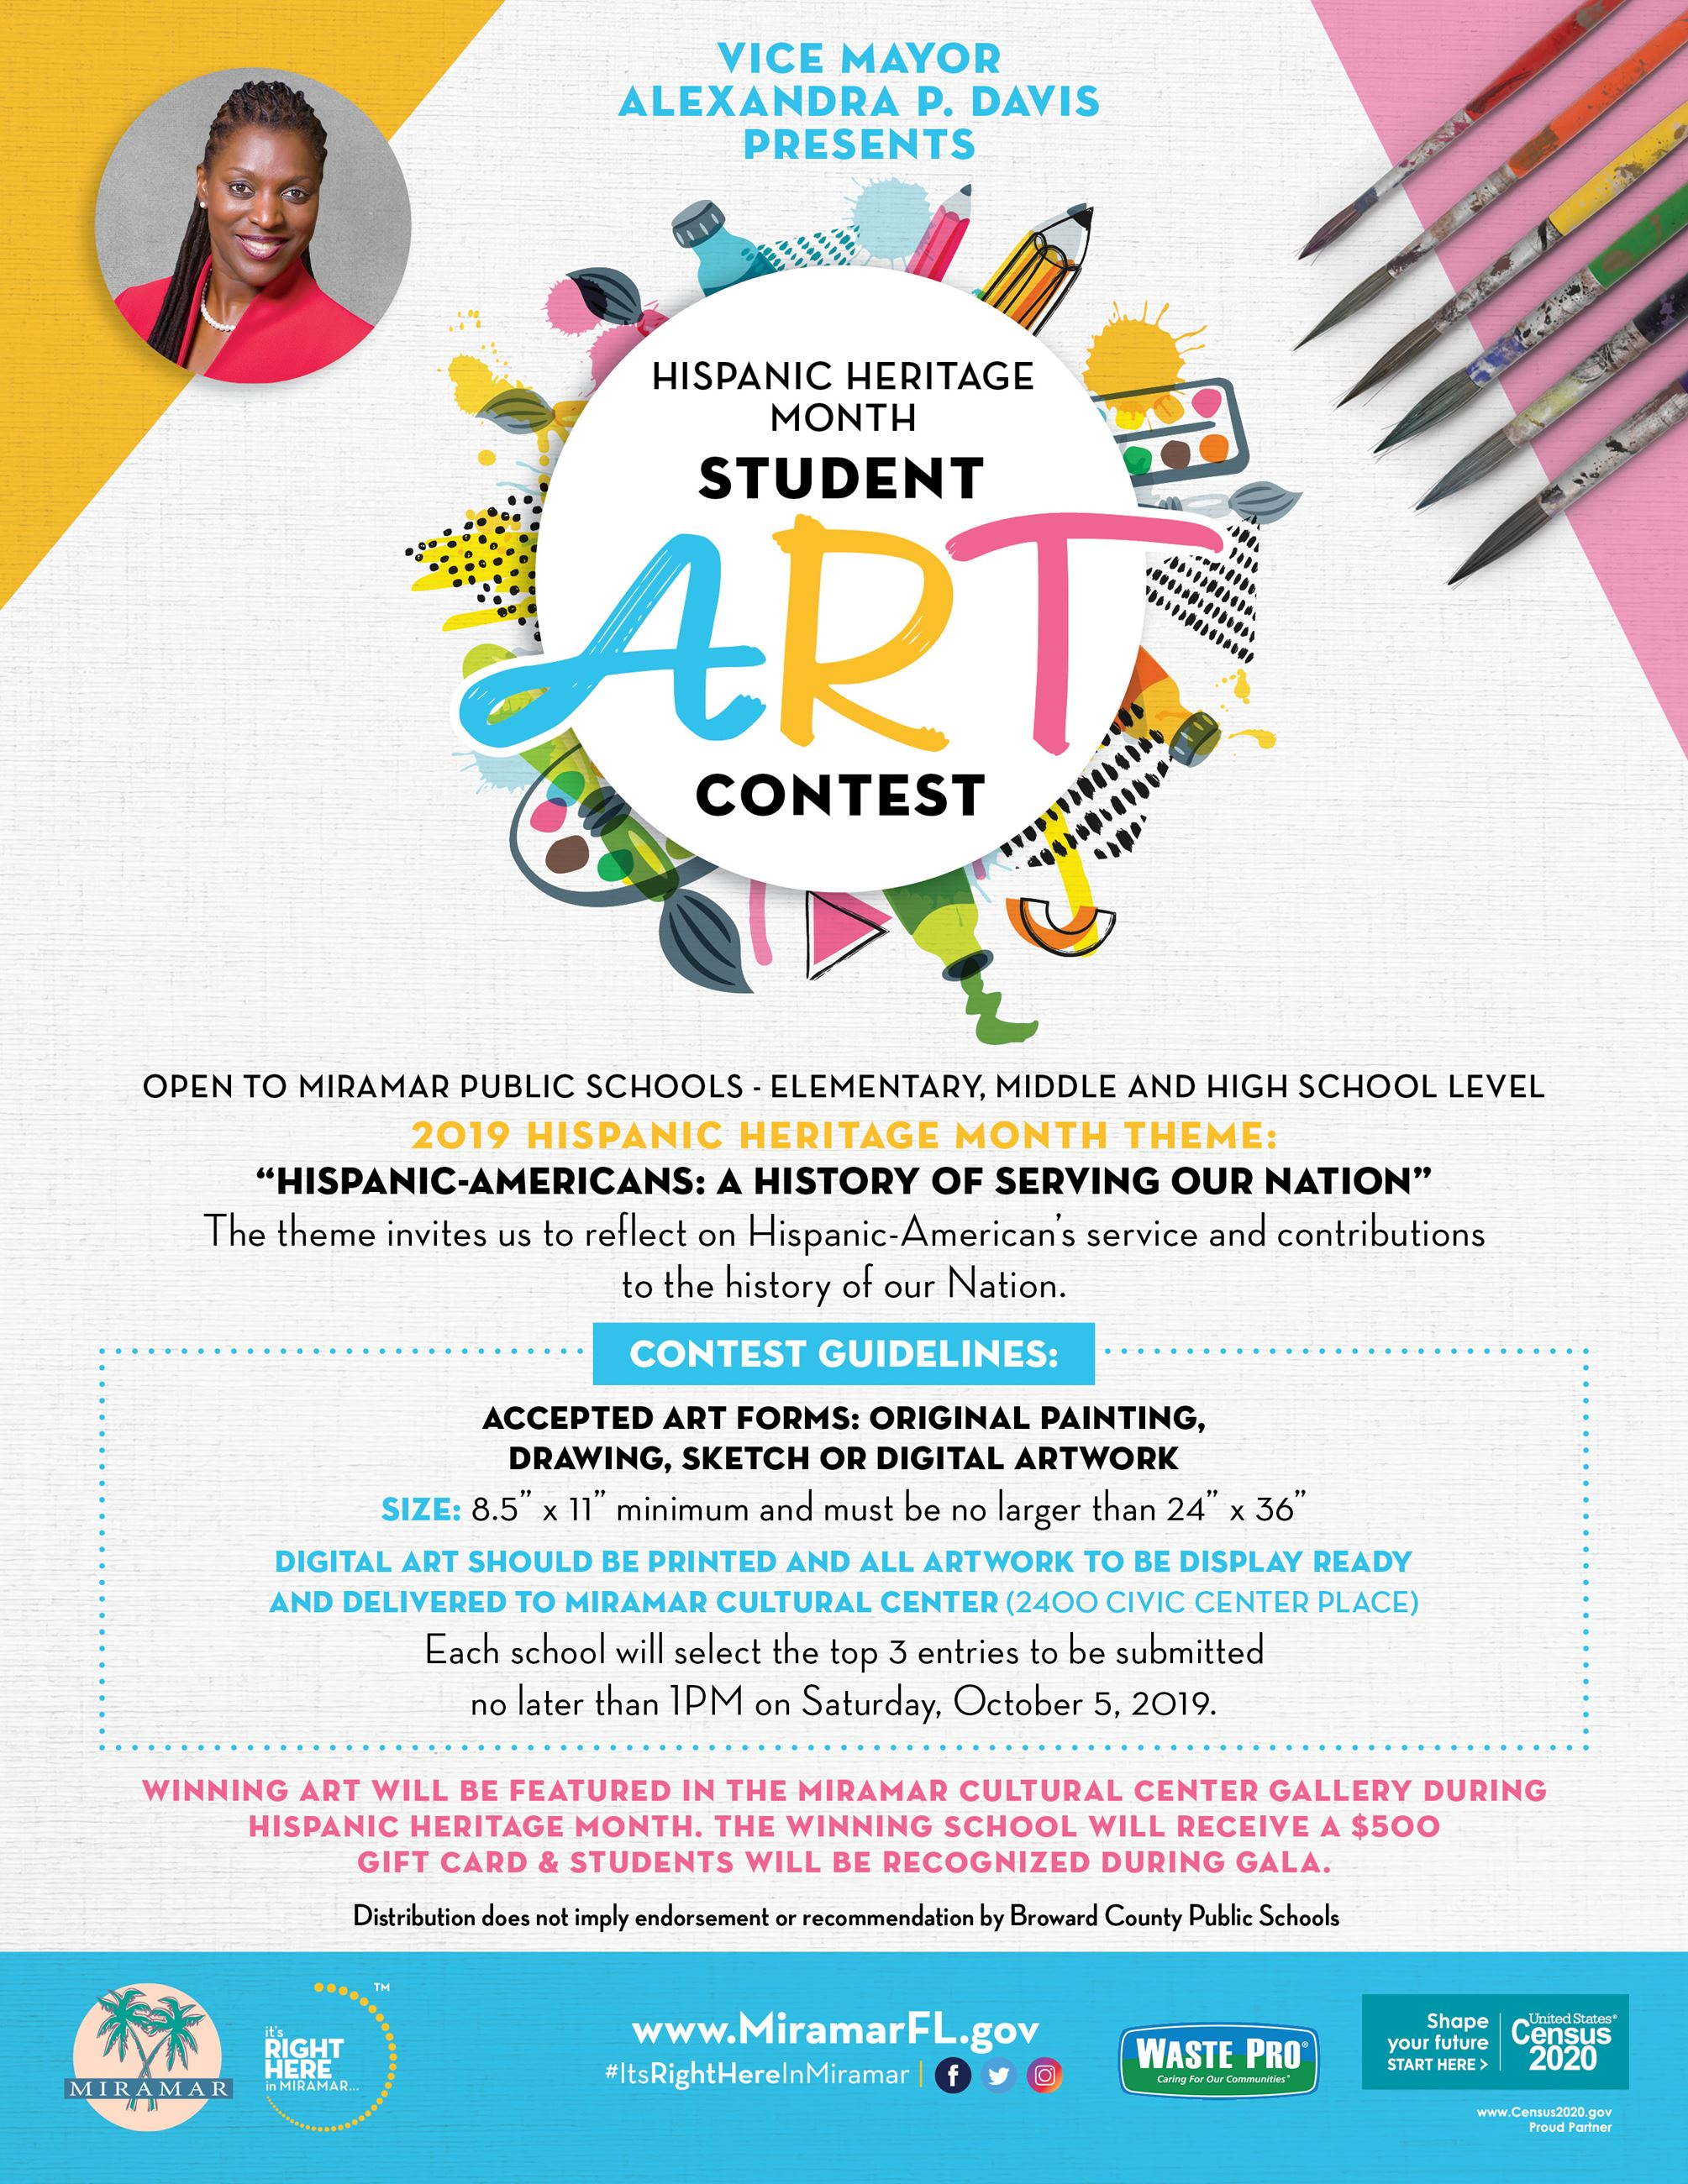 VM-StudentArtContest-900pxWebsite